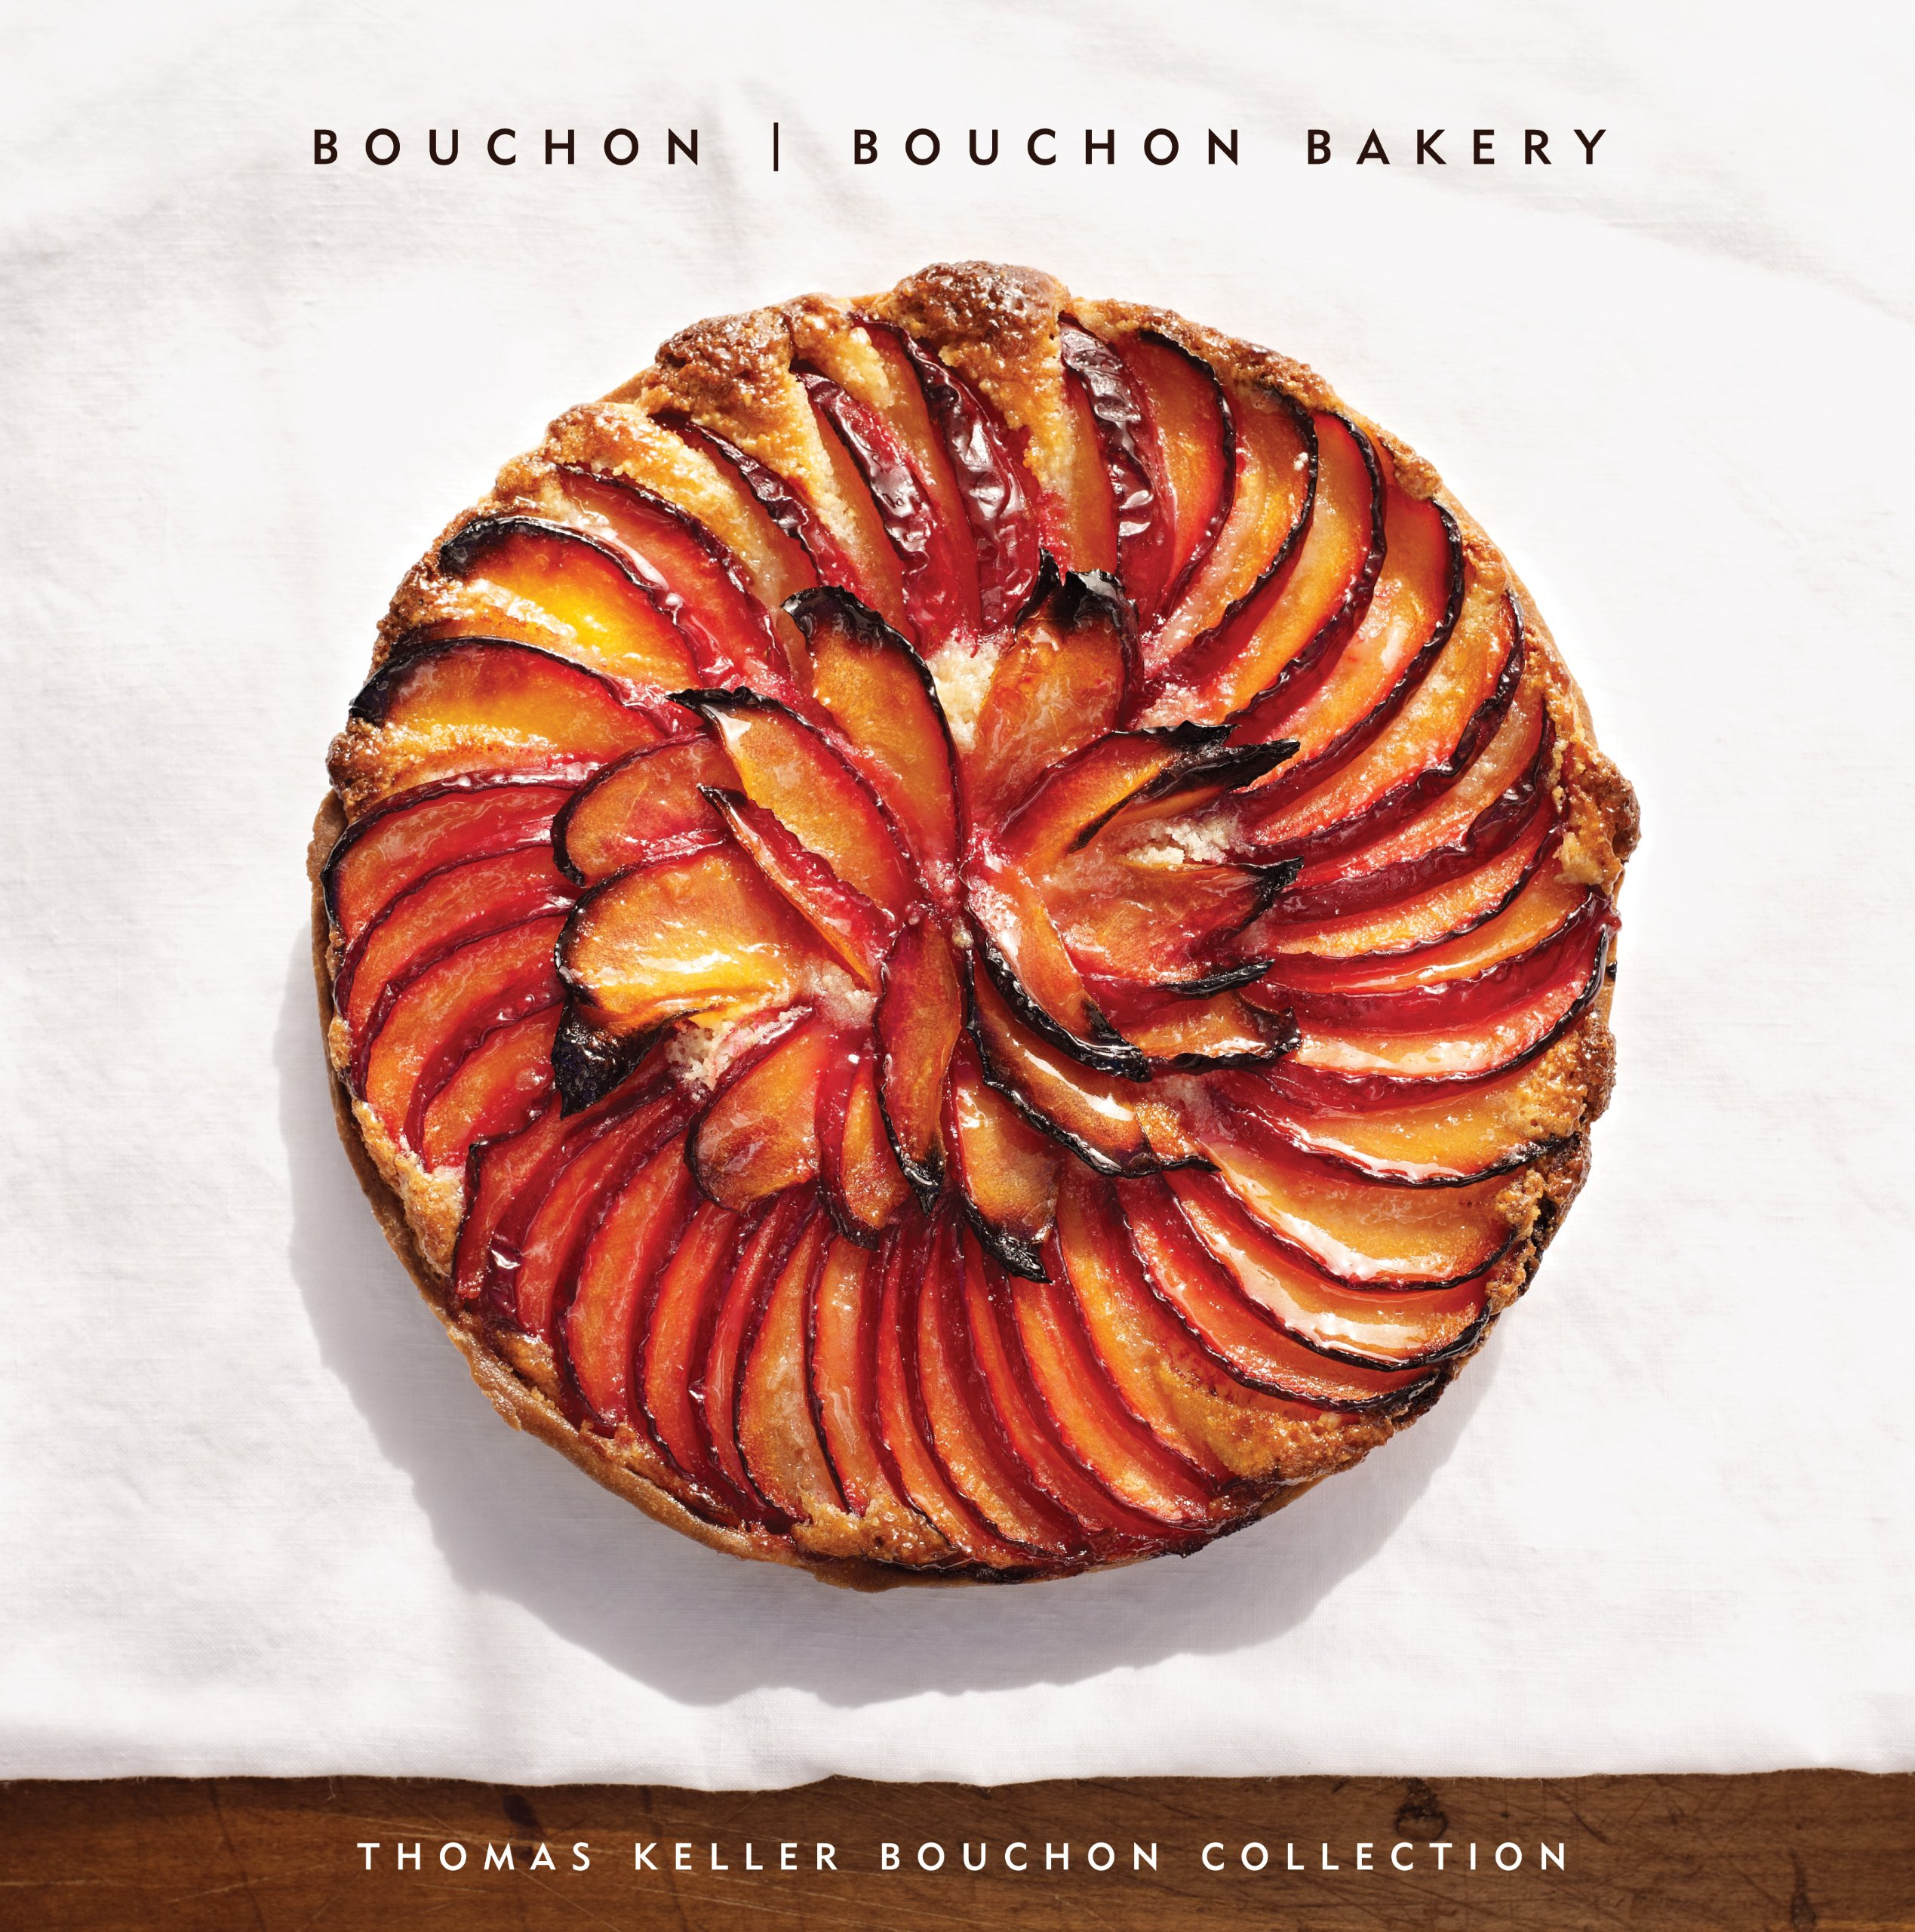 THOMAS KELLER BOUCHON BAKERY EPUB DOWNLOAD